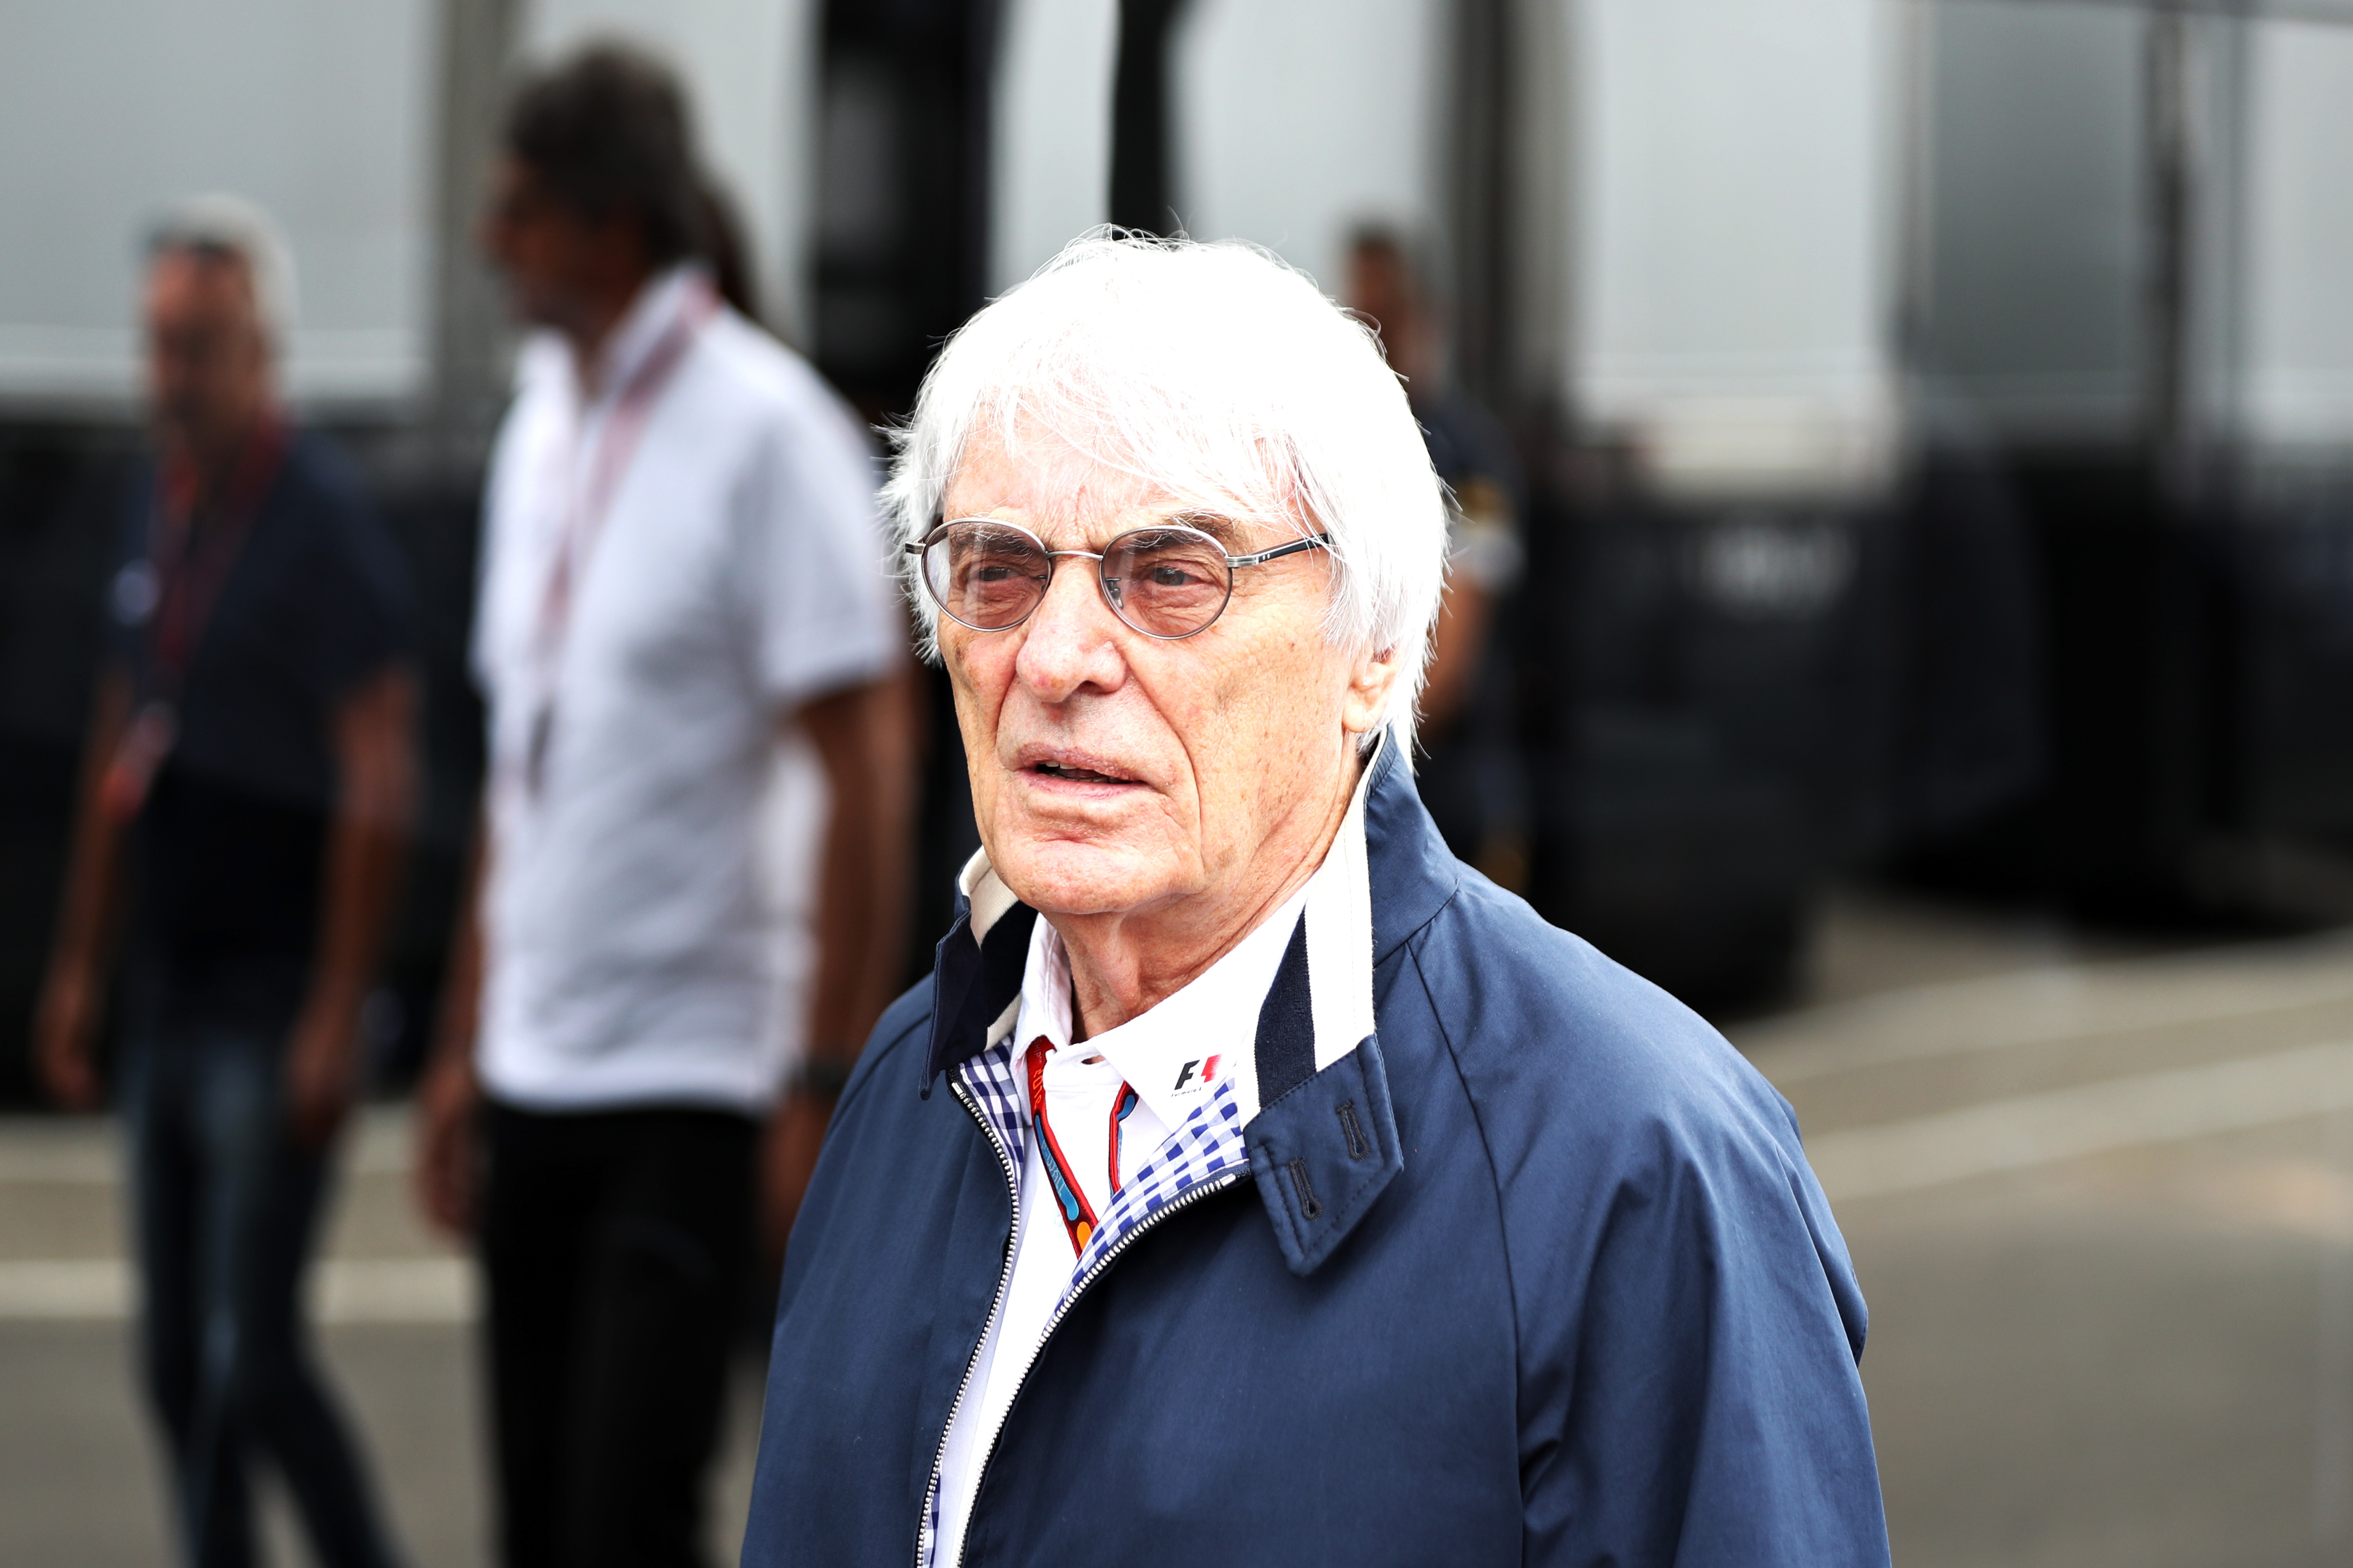 F1 supremo Bernie Ecclestone walks in the paddock  during practice for the Formula One Grand Prix of Germany on July 29, 2016, in Hockenheim, Germany